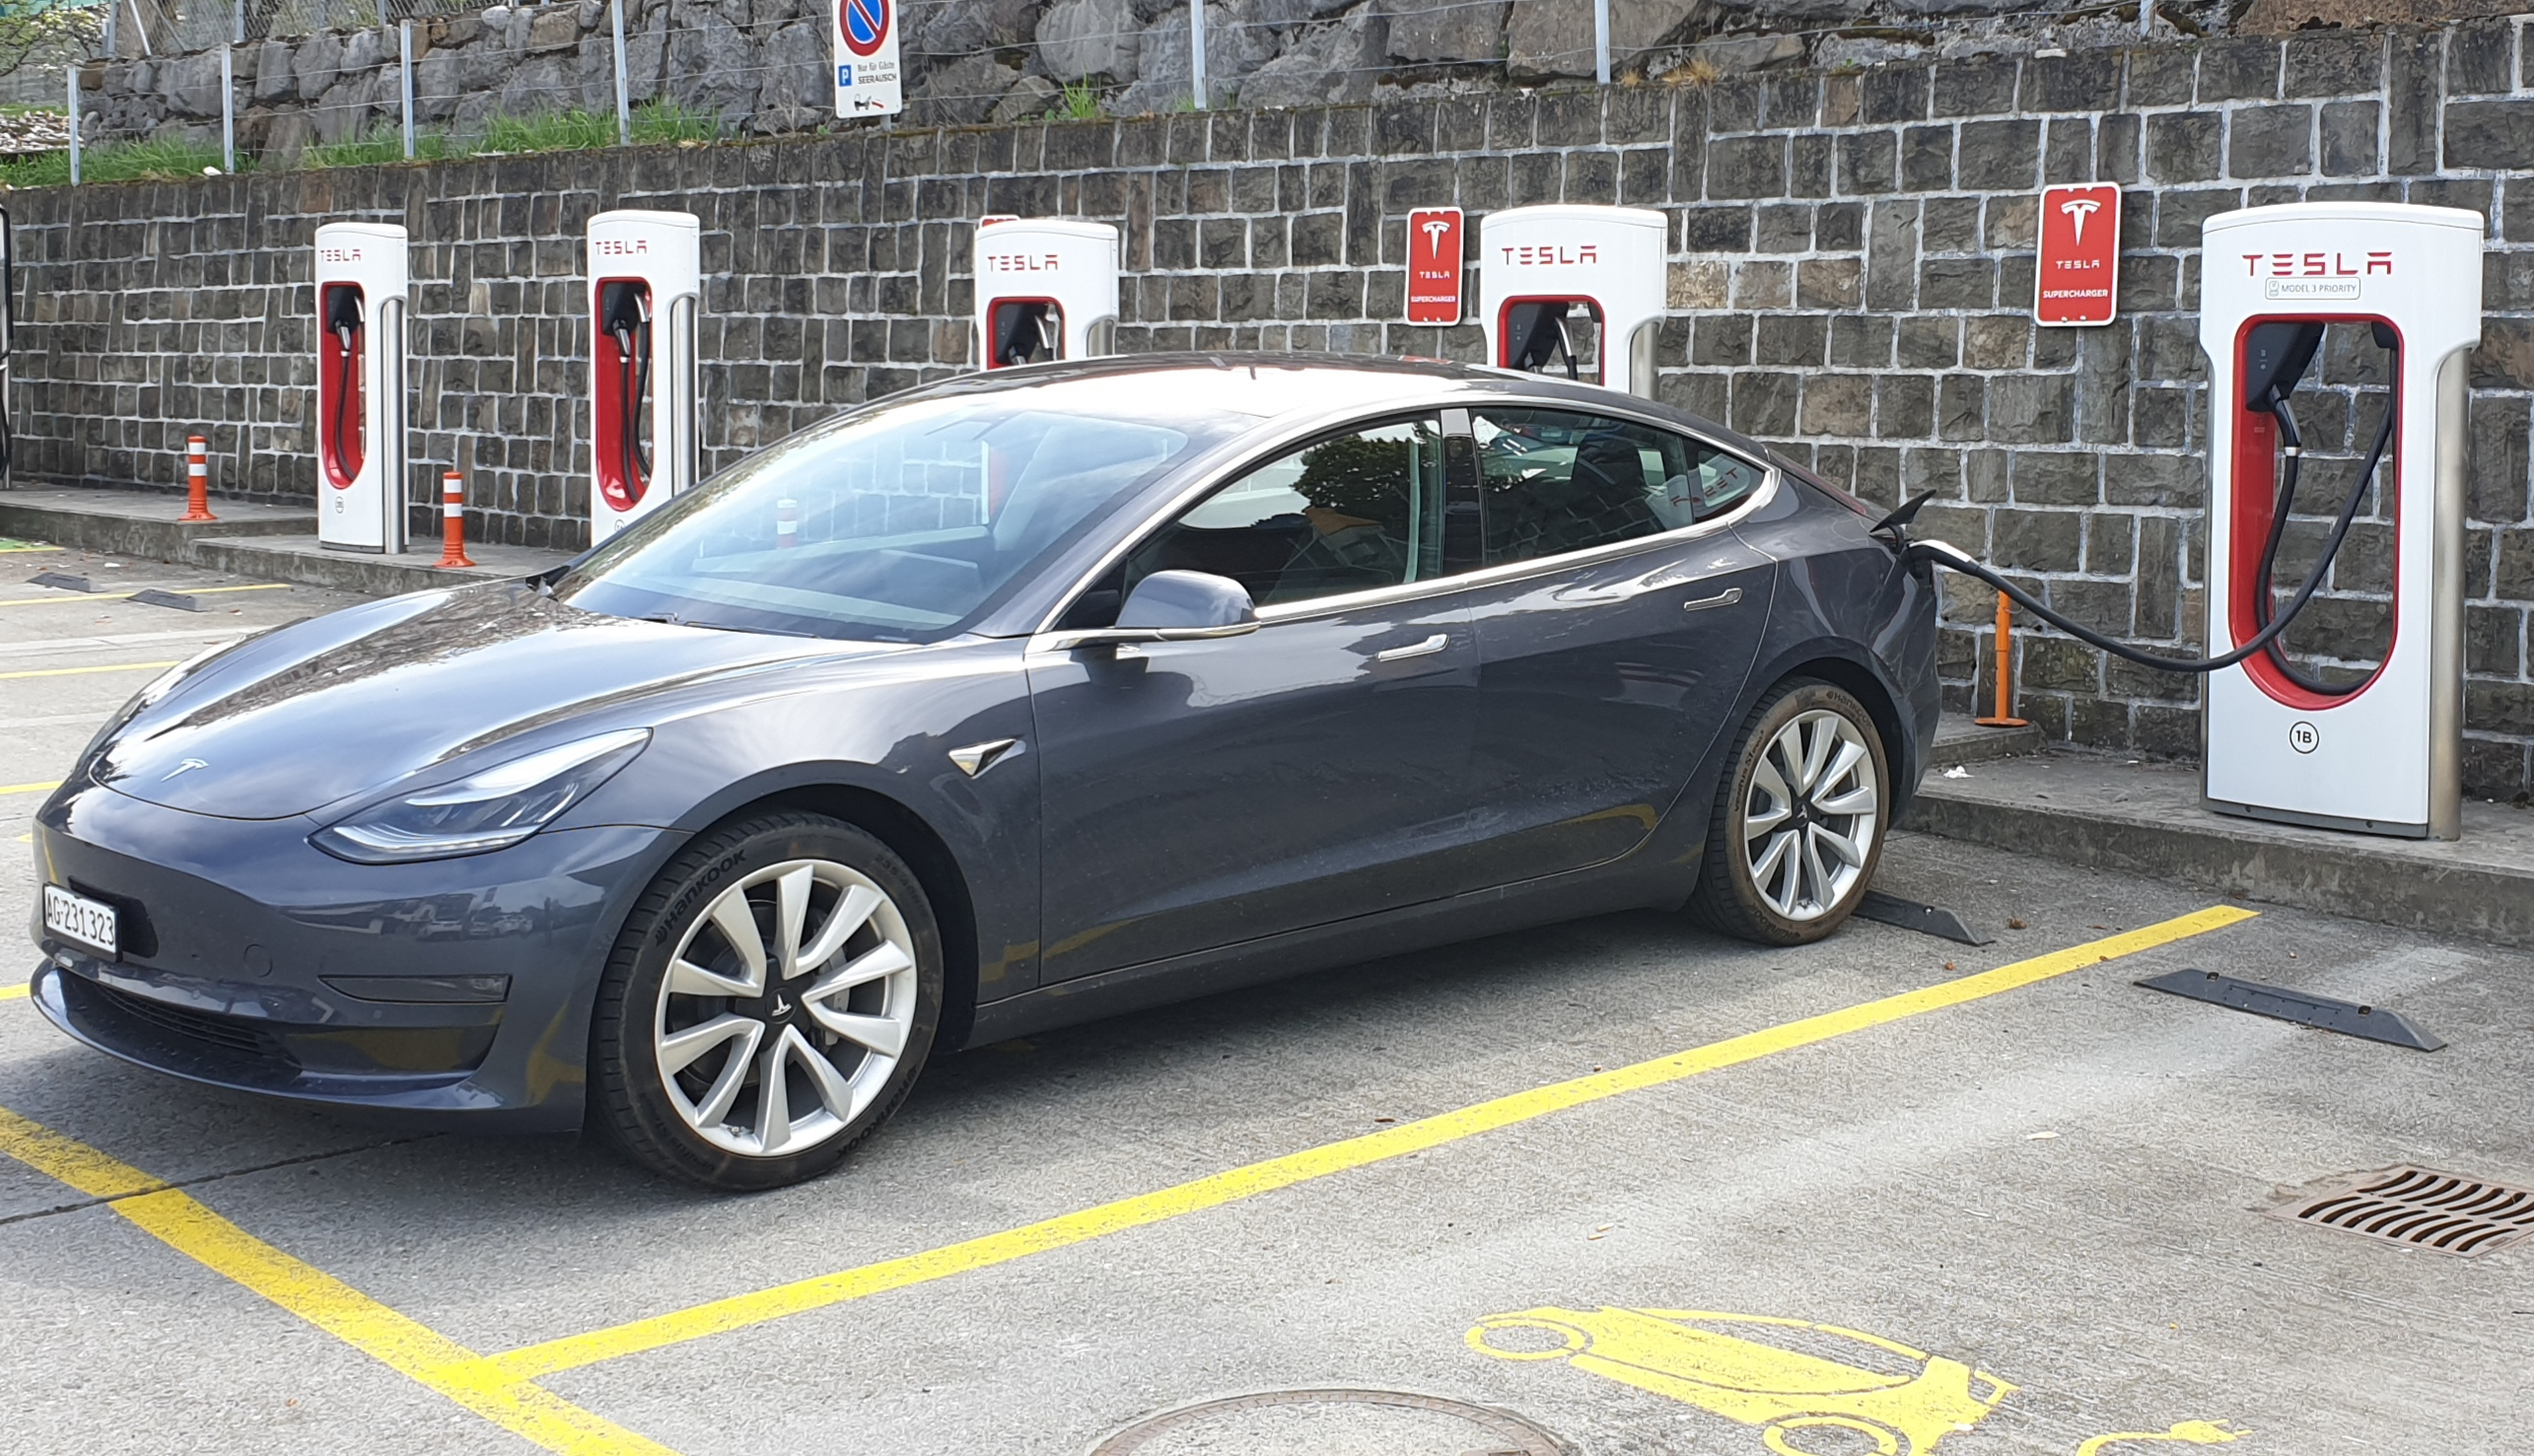 Supercharger Beckenried